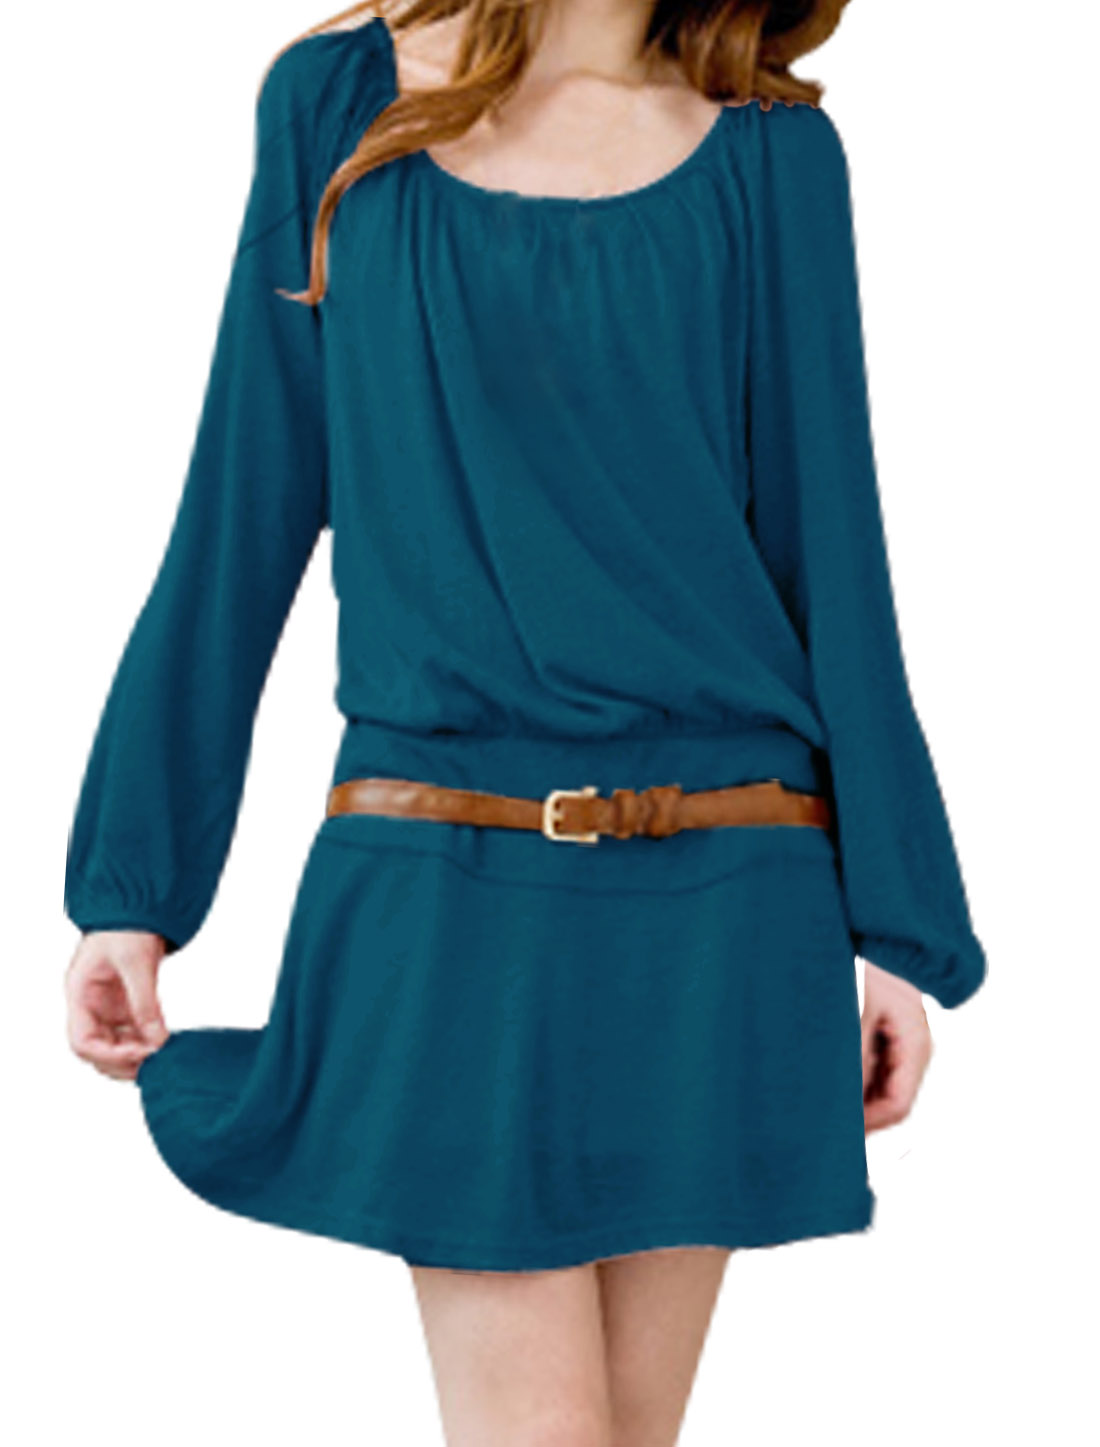 Women Long Raglan Sleeve Gathered Detail Sweet Dress w Belt Dark Turquoise M